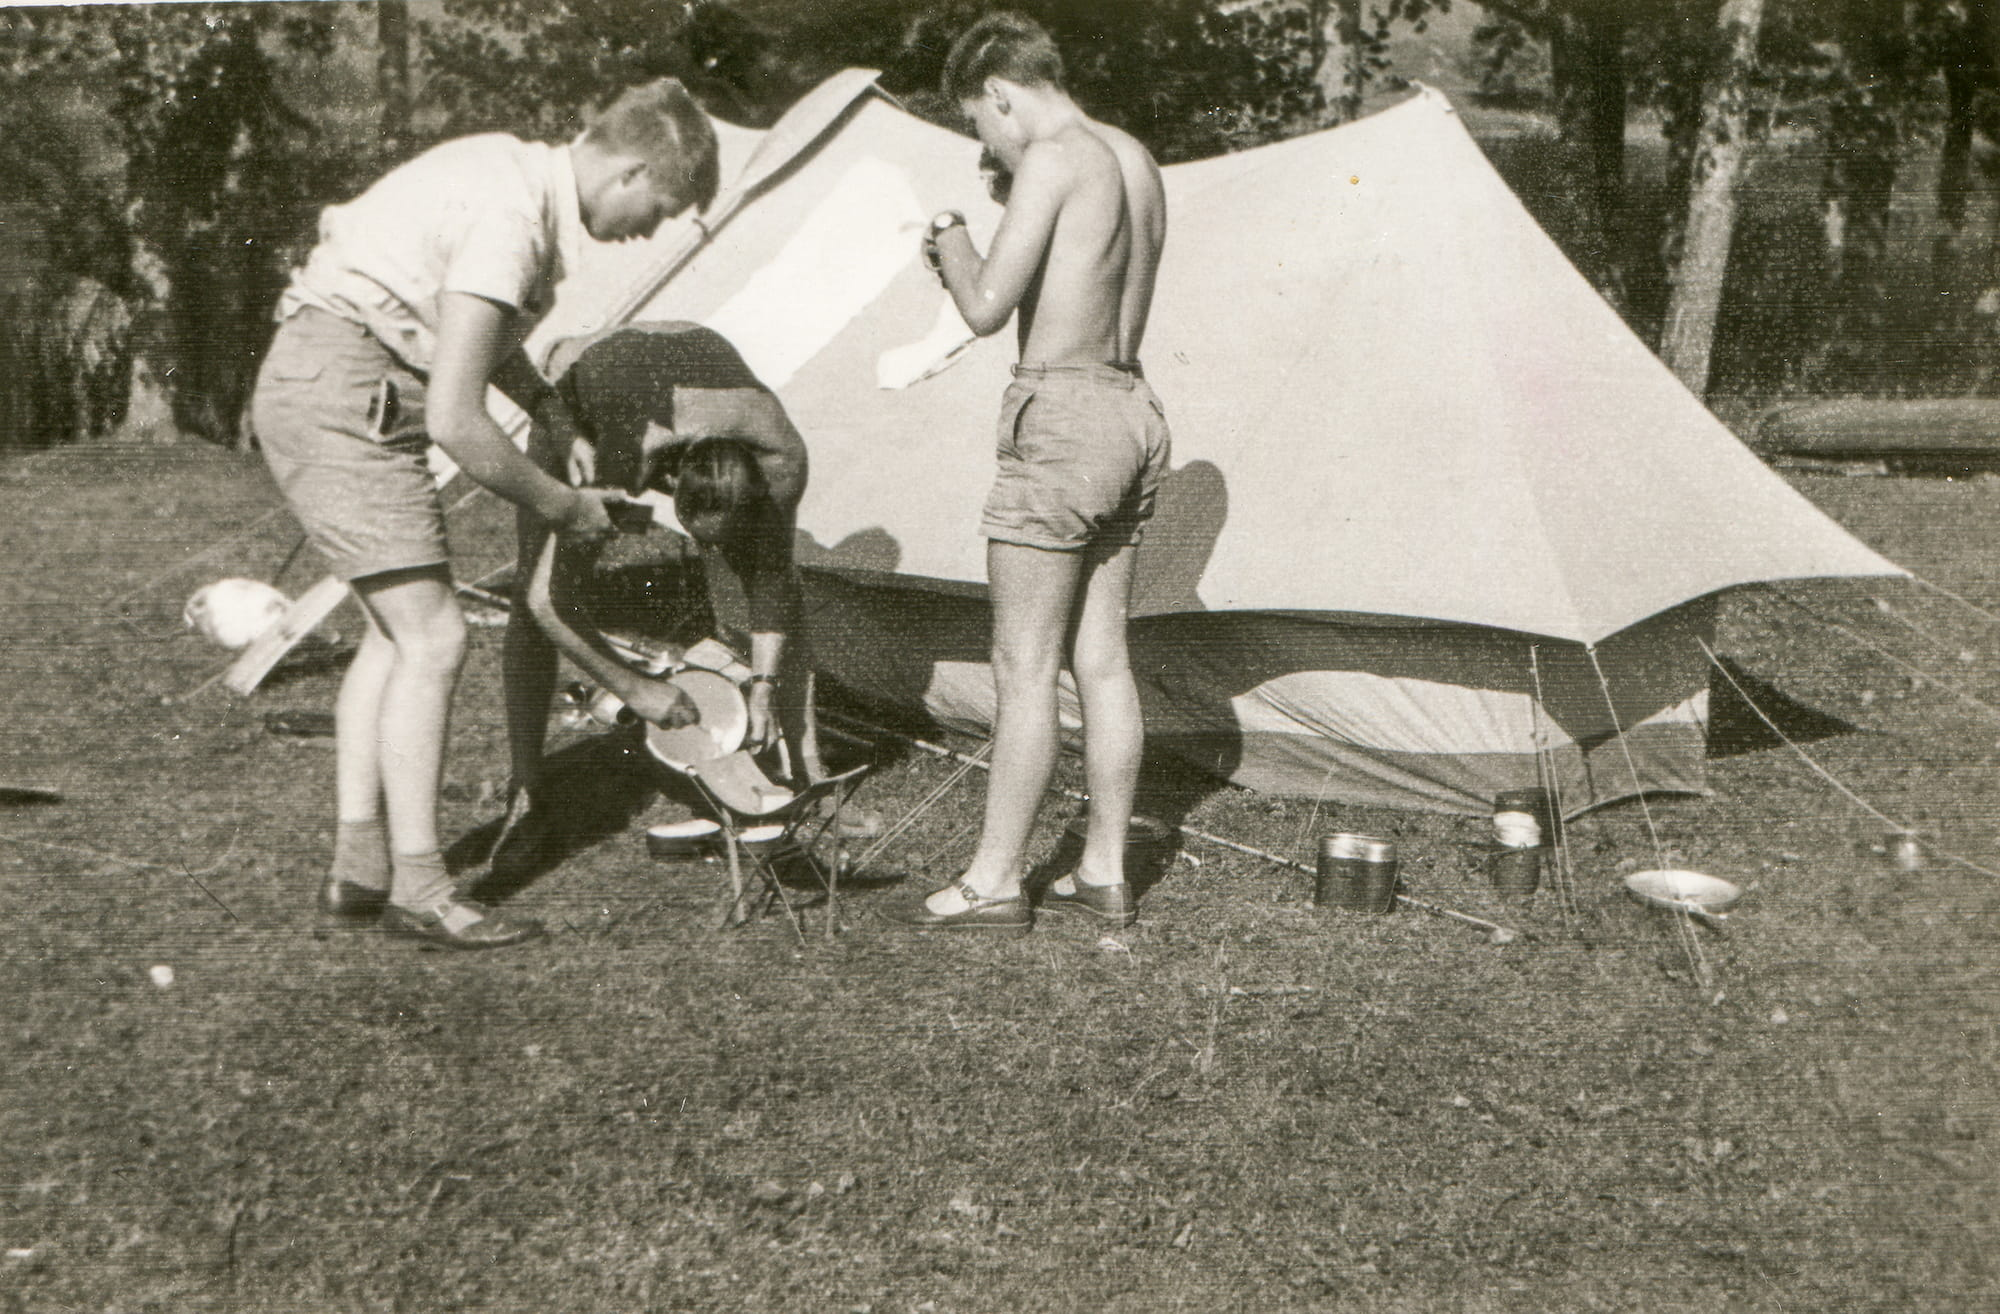 3 young men setting up a stove at a campsite.